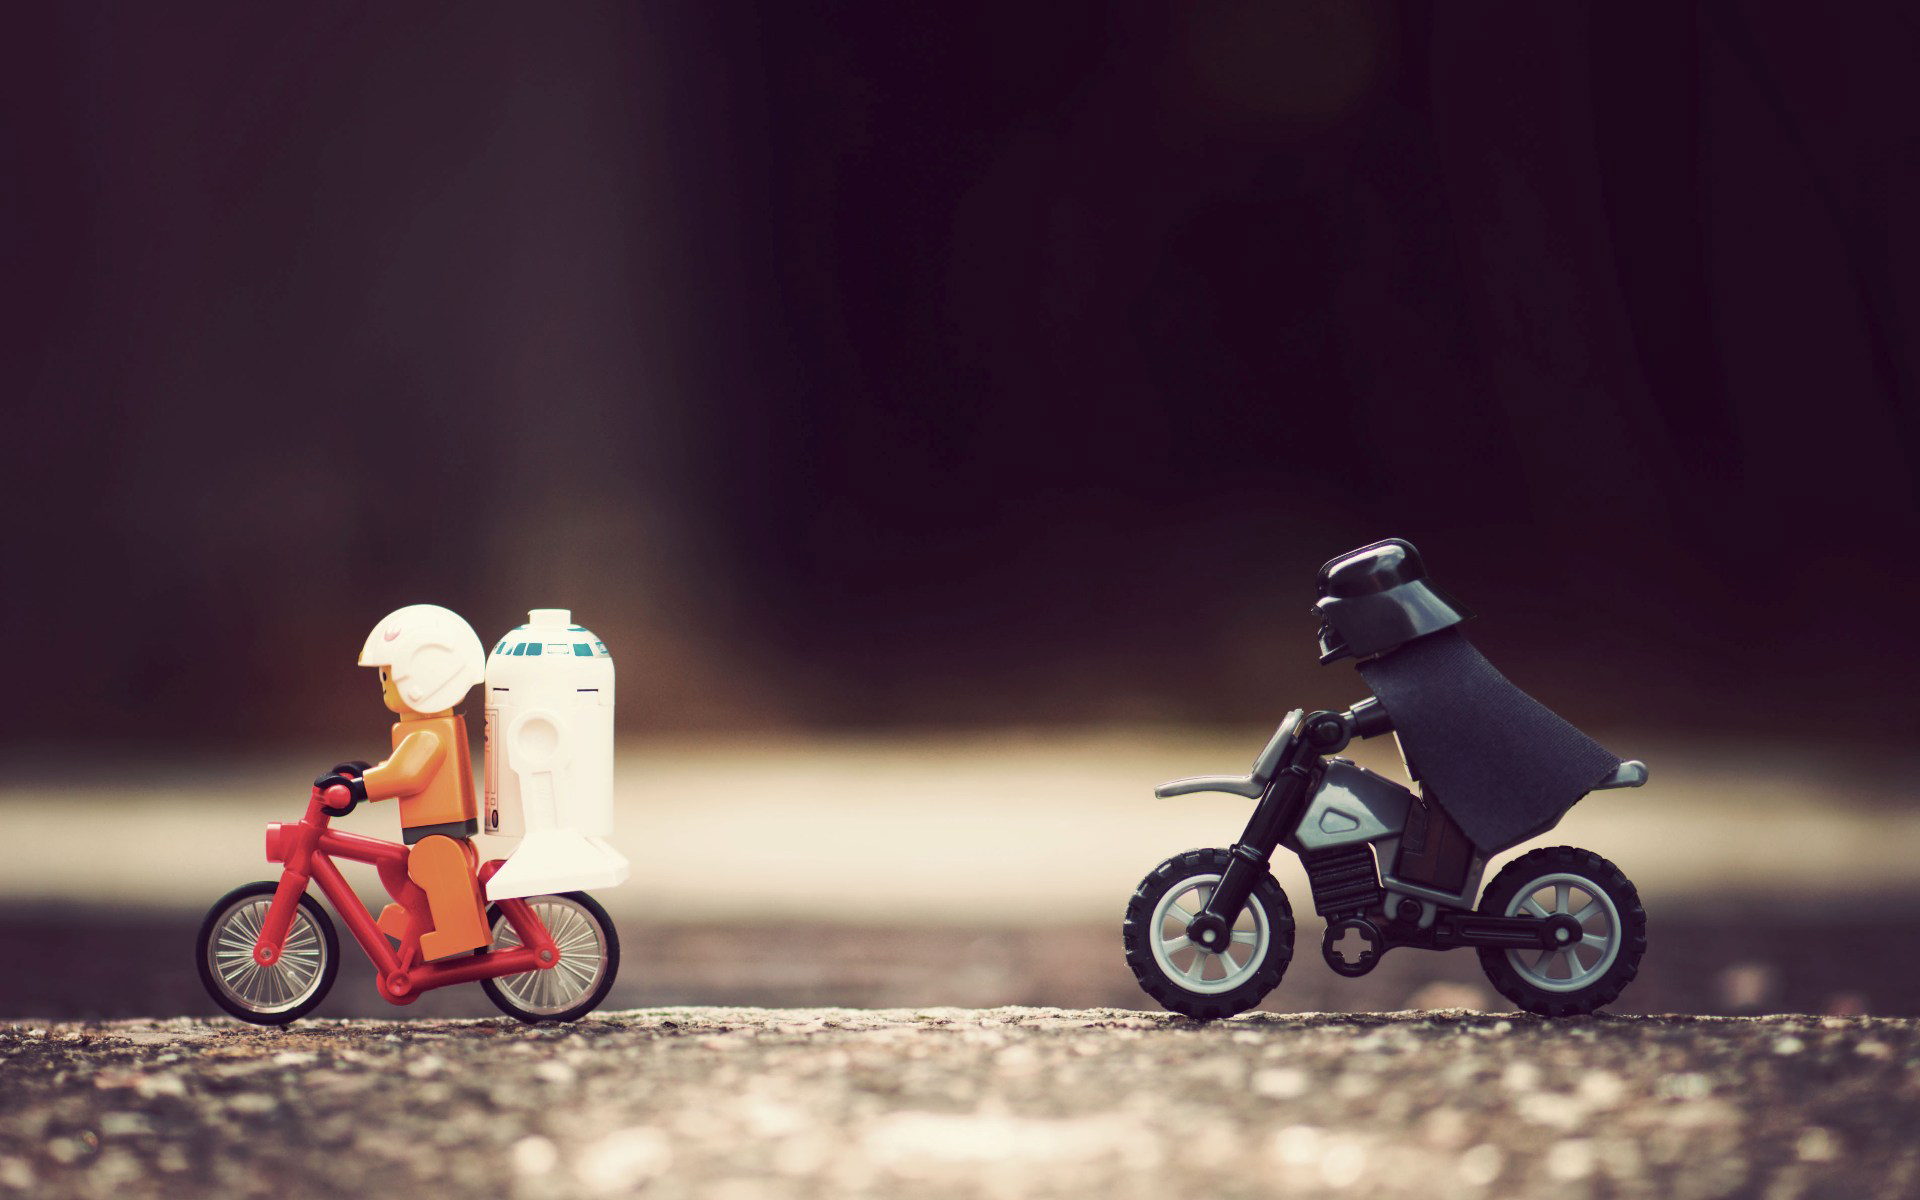 Cool Toy Lego Wallpaper 39407 1920x1200 px